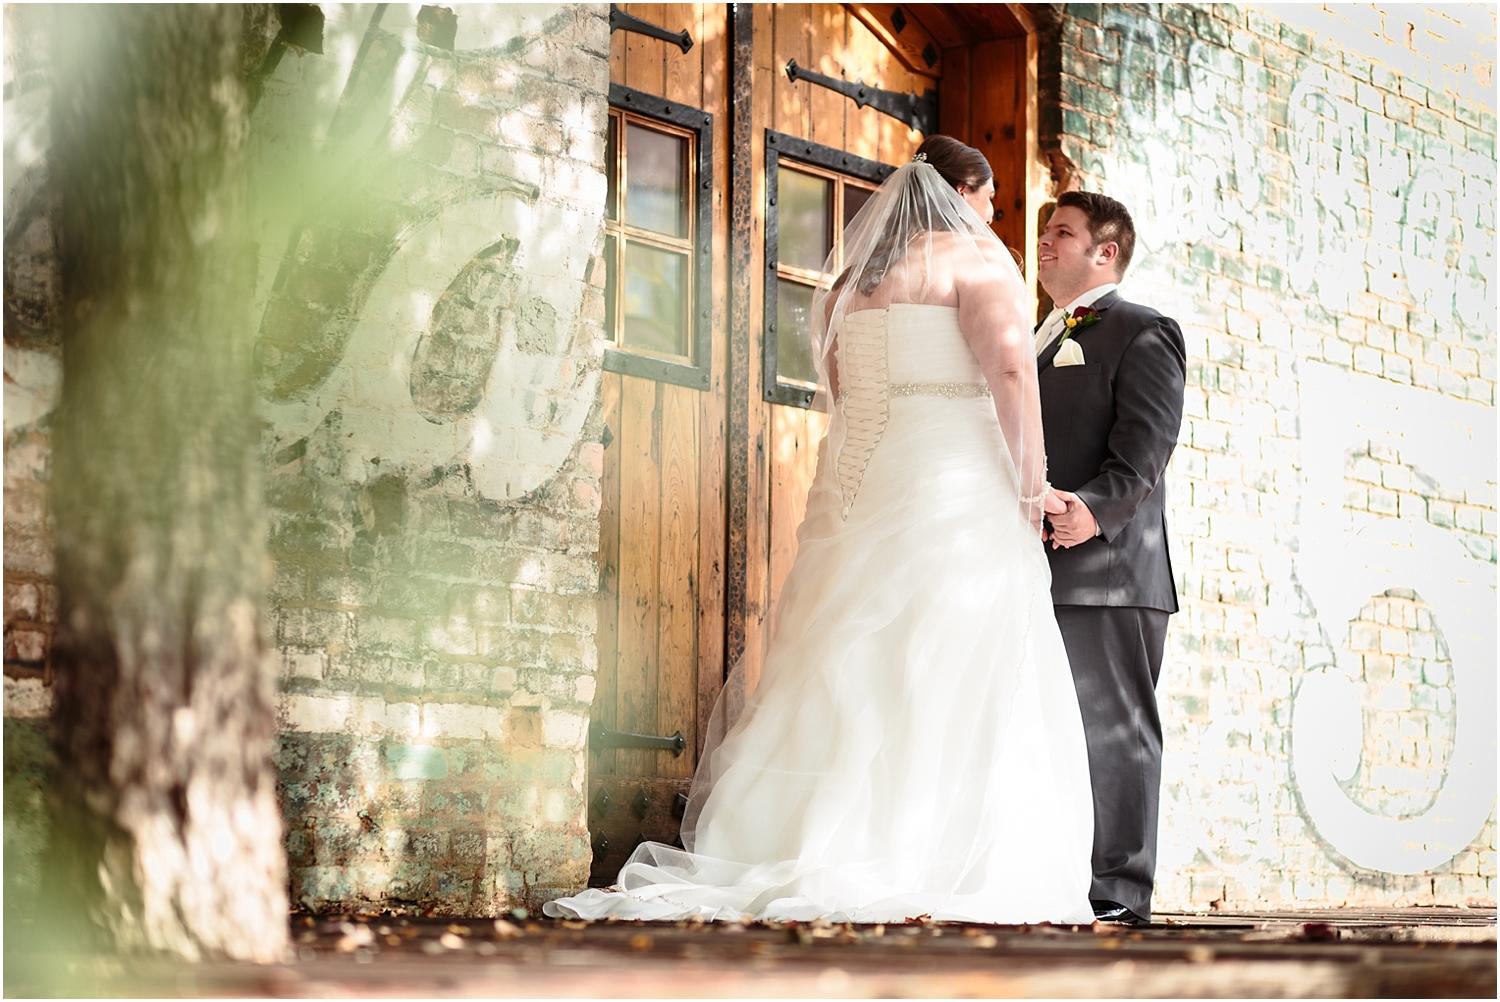 old-cigar-warehouse-wedding-photography-20_blog.jpg